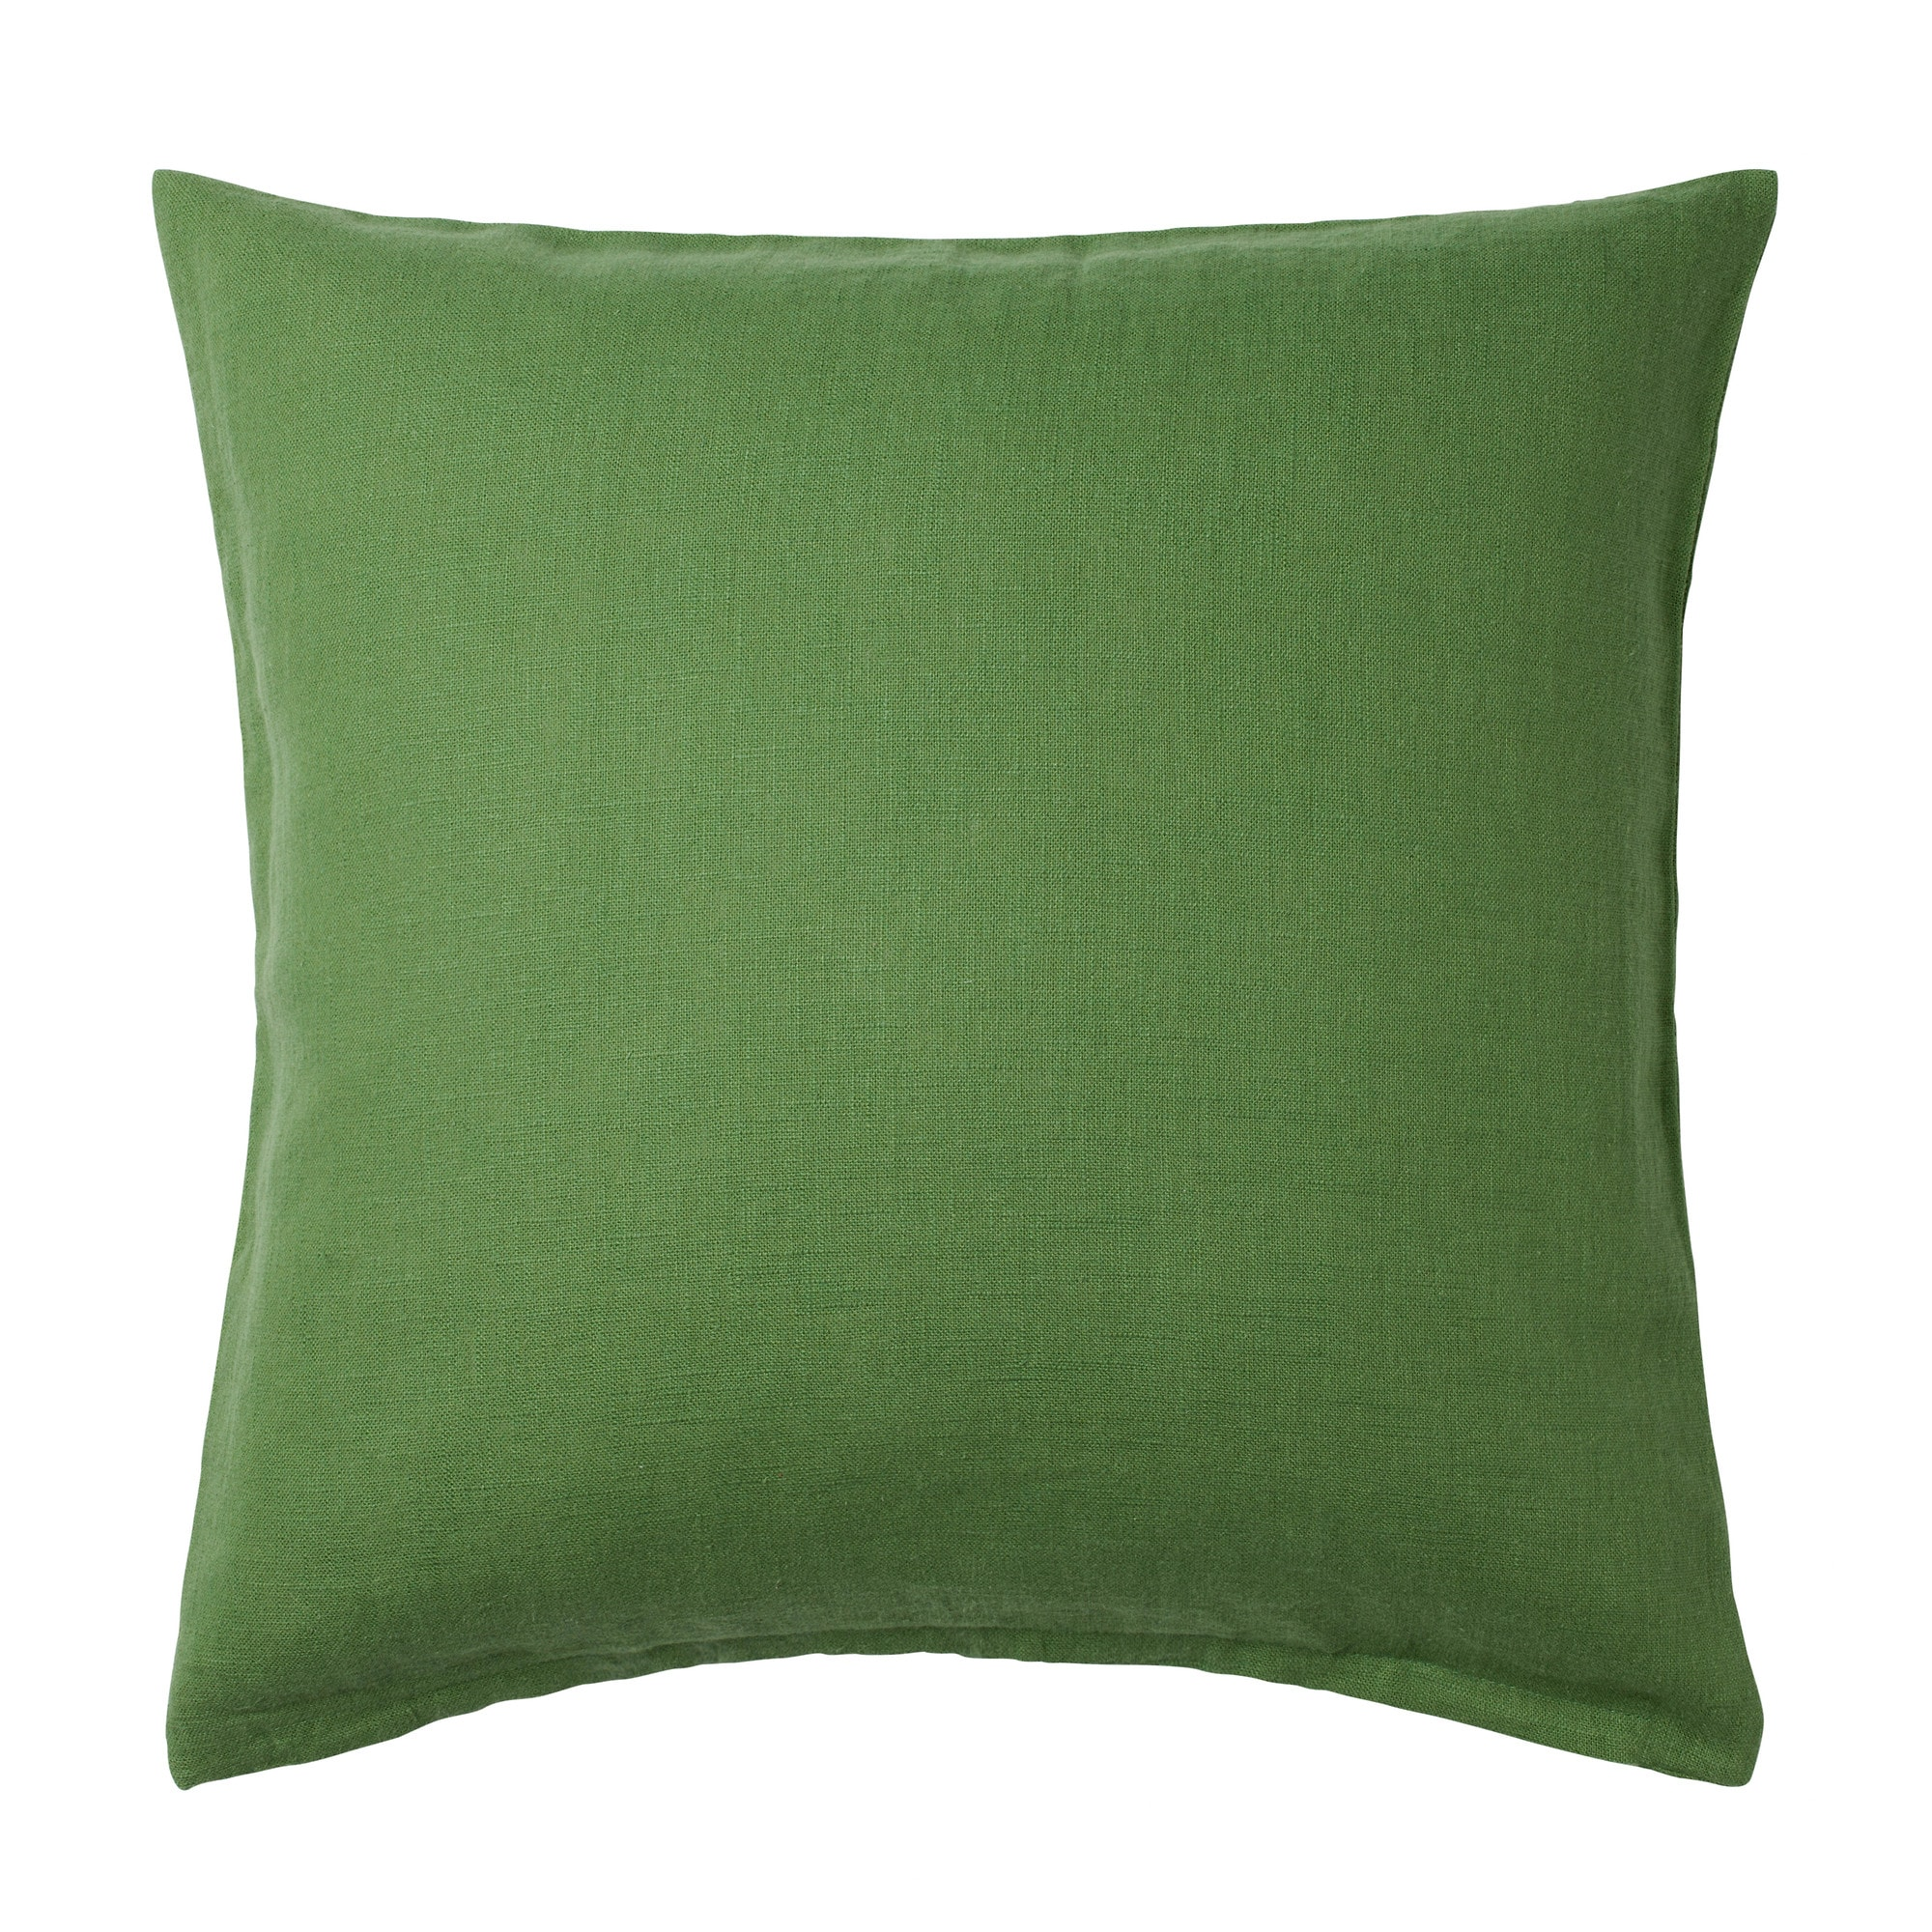 VIGDIS Cushion cover IKEA